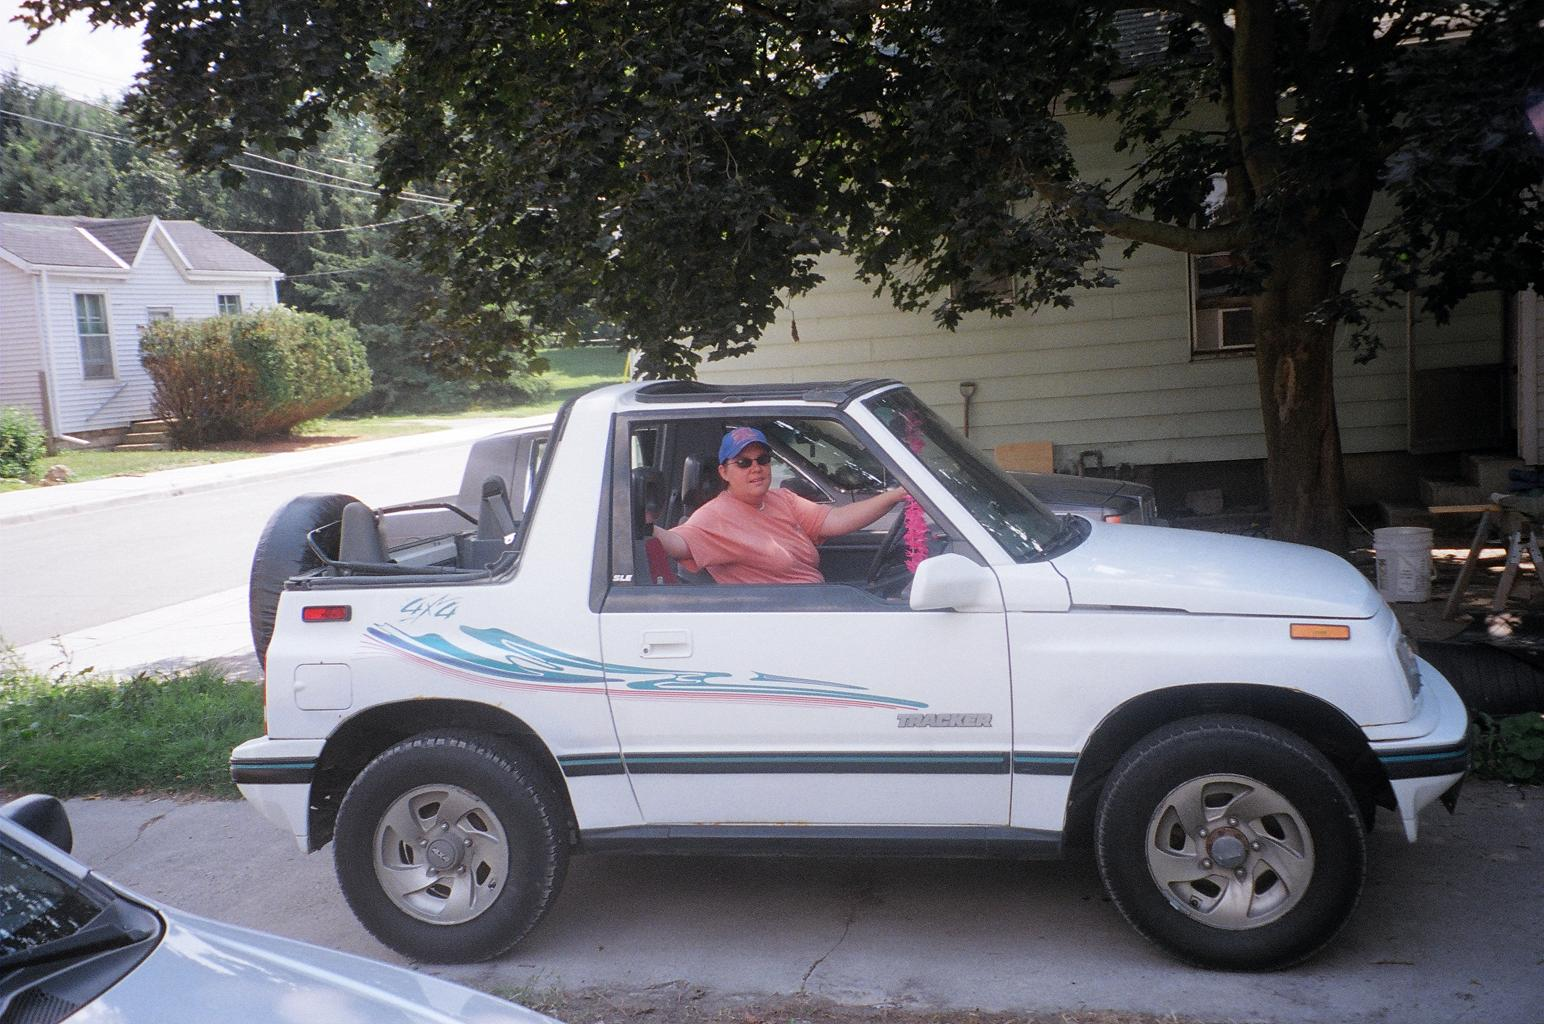 Chevrolet Tracker For Sale 1991 Geo Tracker - Overview - CarGurus